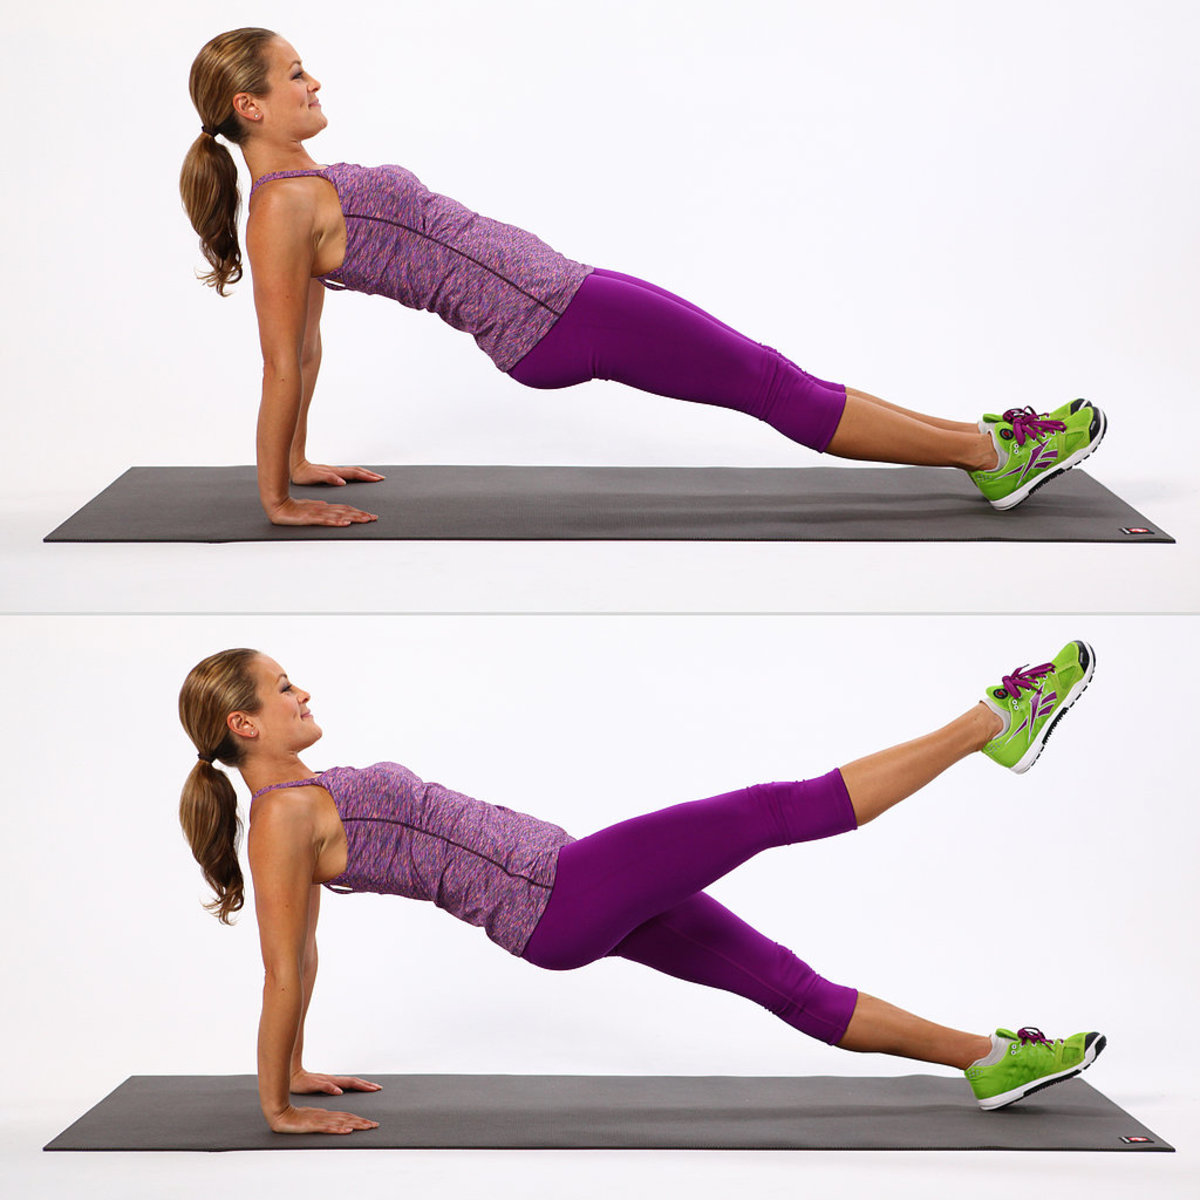 Reverse Plank with Leg Lift Demonstrated by Pretty Girl in Purple Fitness Gear and Green Athletic Sneakers